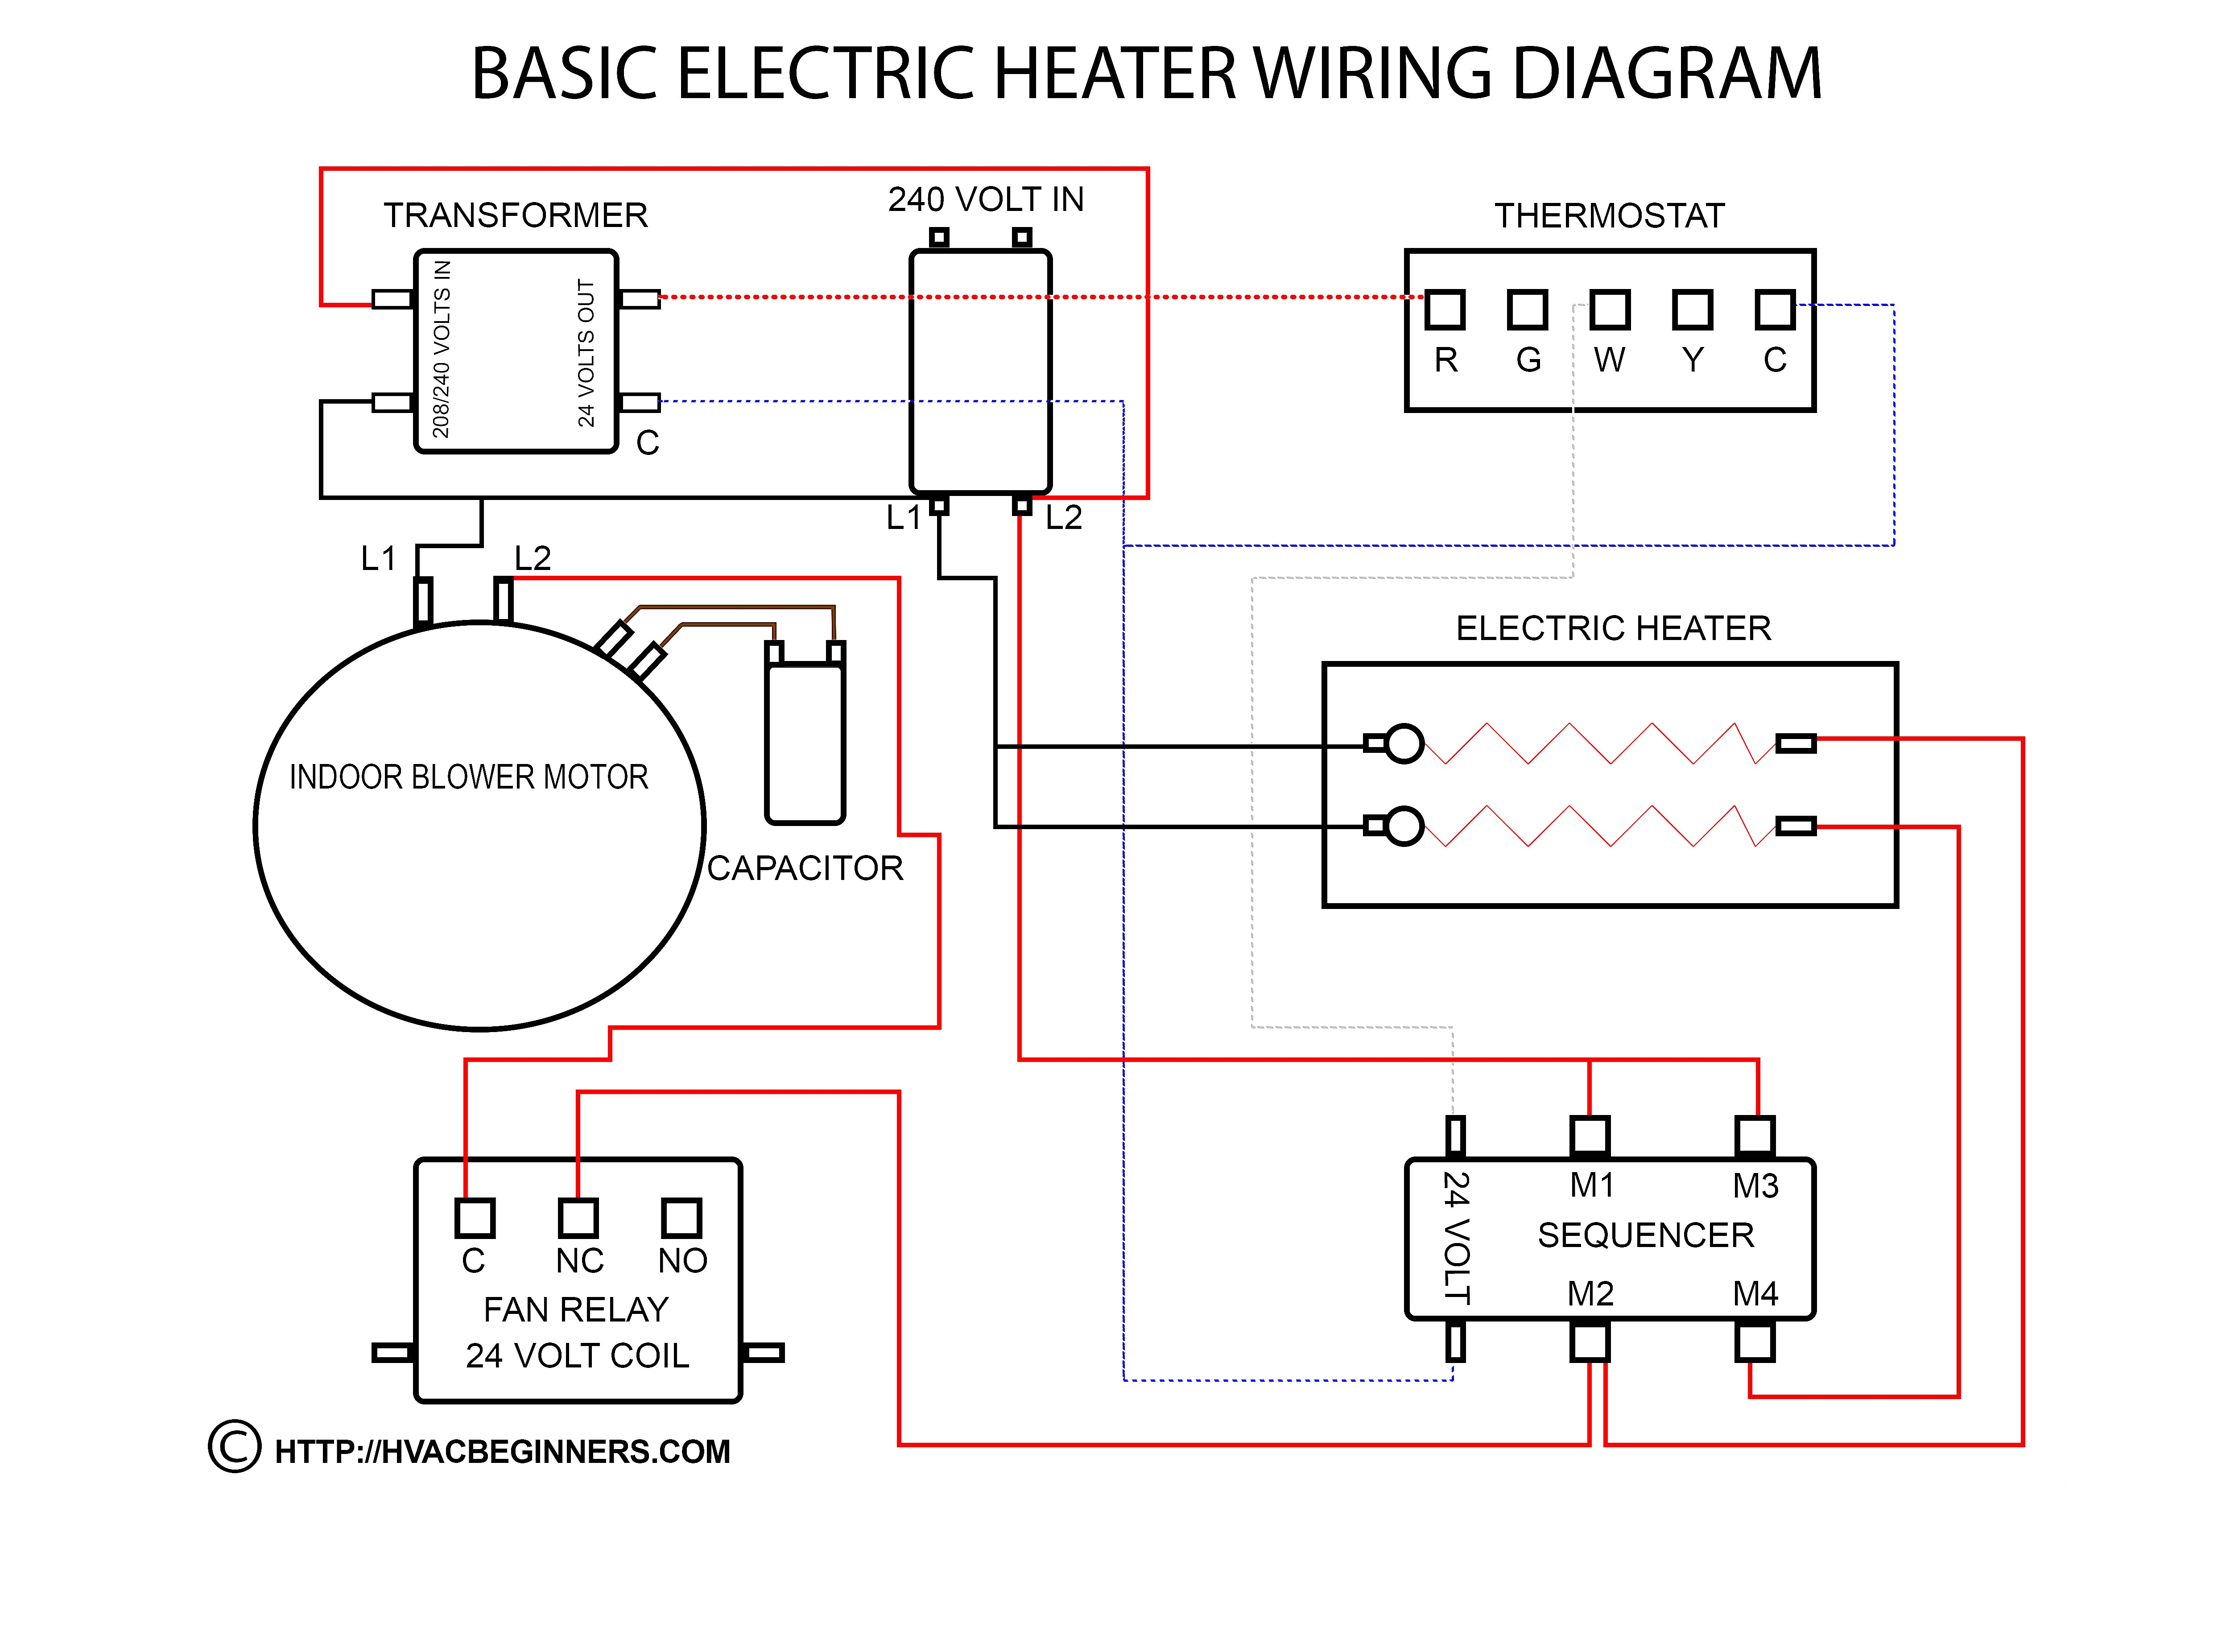 sauna heater wiring diagram Download-Gas Furnace Wiring Diagram New Gas Furnace Wiring Diagram Excellent Appearance Muffle Wire 7-n